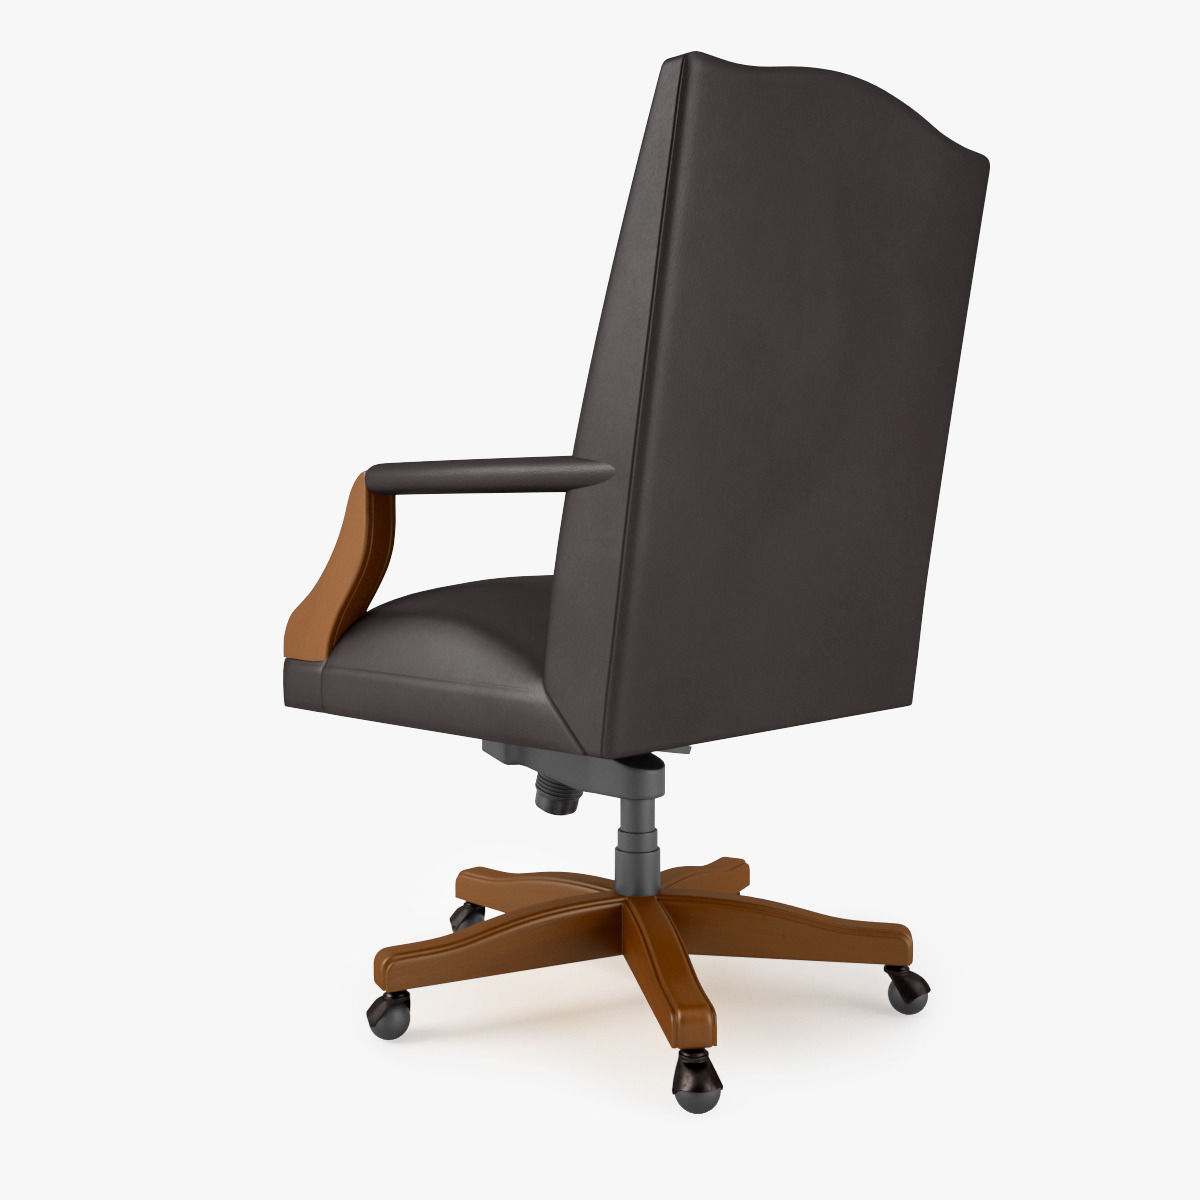 office chair 3d model wooden arm chairs steelcase mansfield max obj fbx mtl